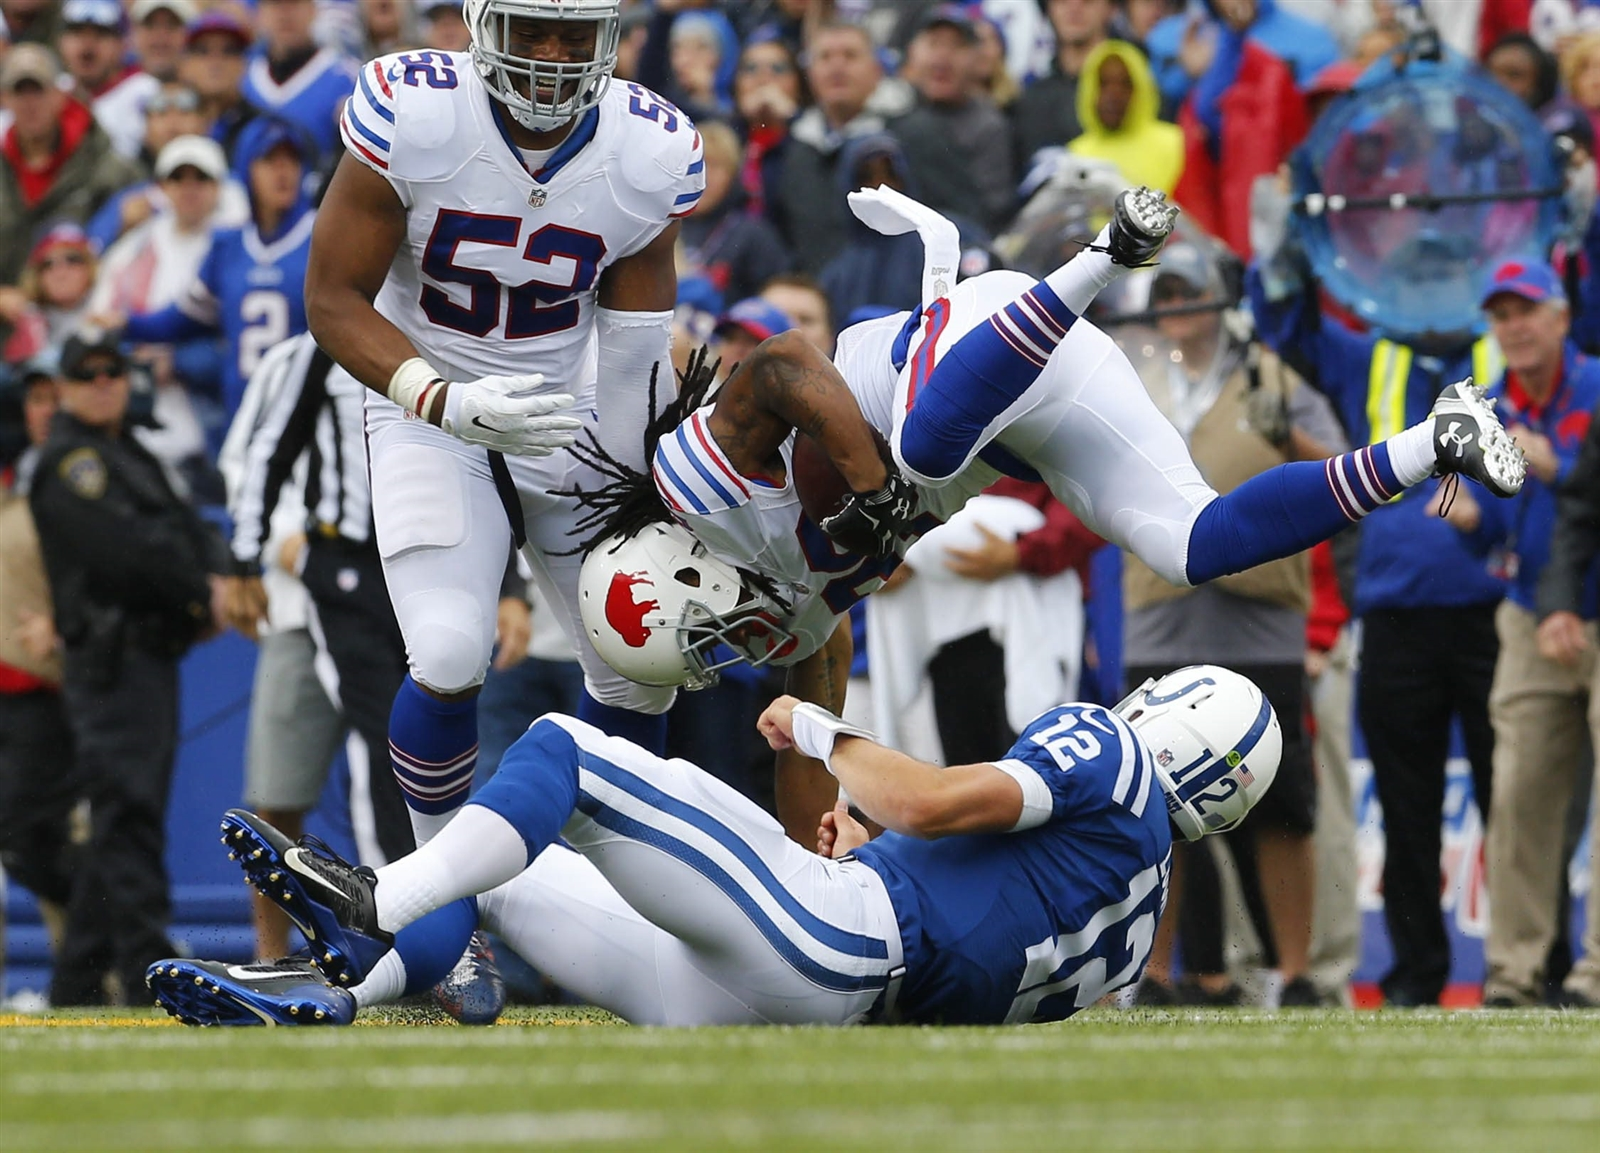 Rookie Ronald Darby is upended by Andrew Luck after his pivotal interception. (Mark Mulville/Buffalo News)